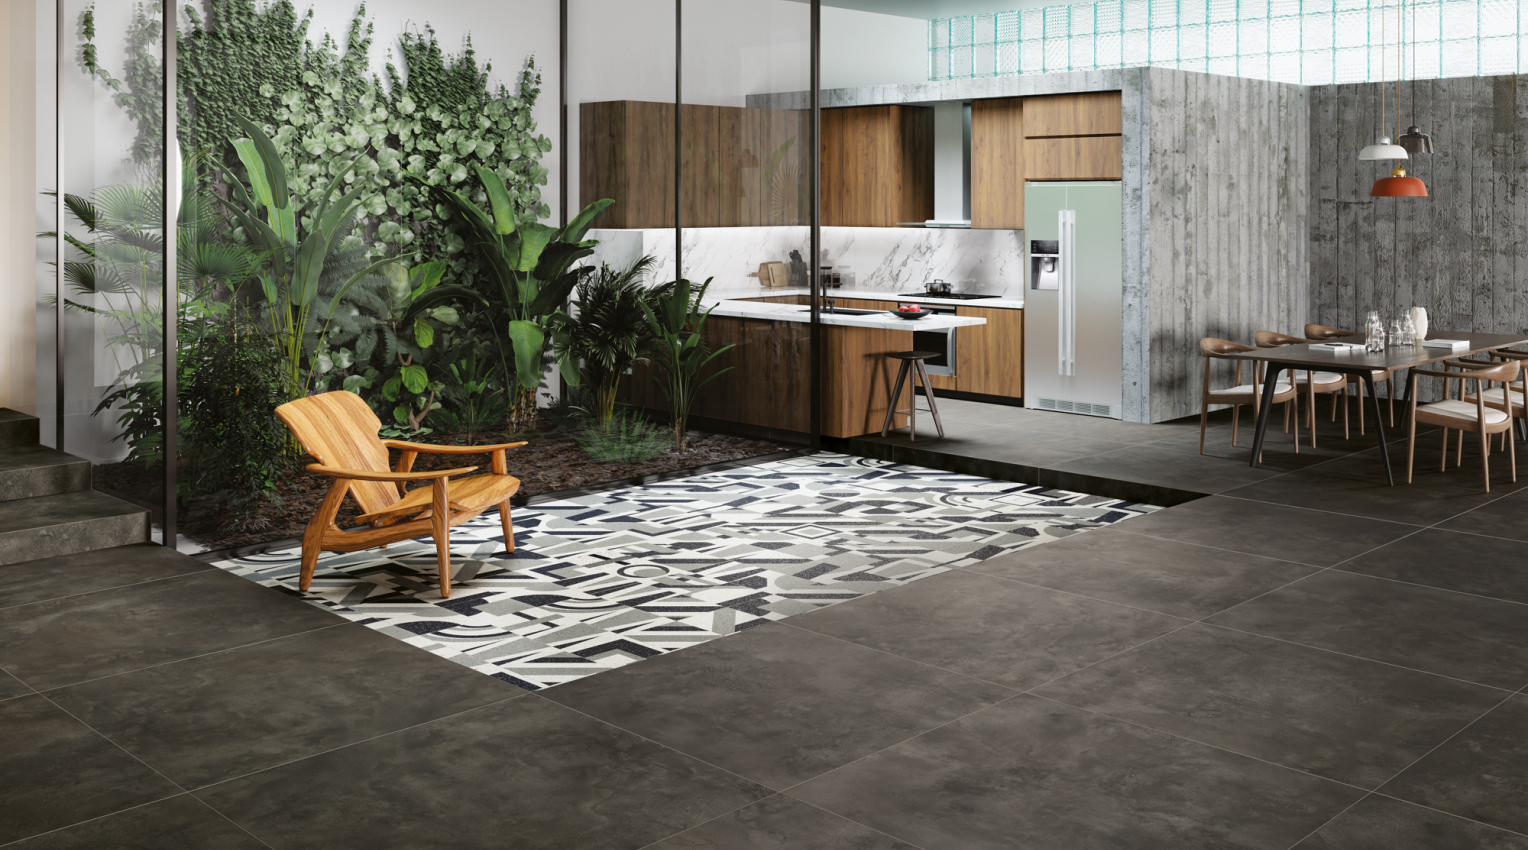 Loft original design porcelain tiles